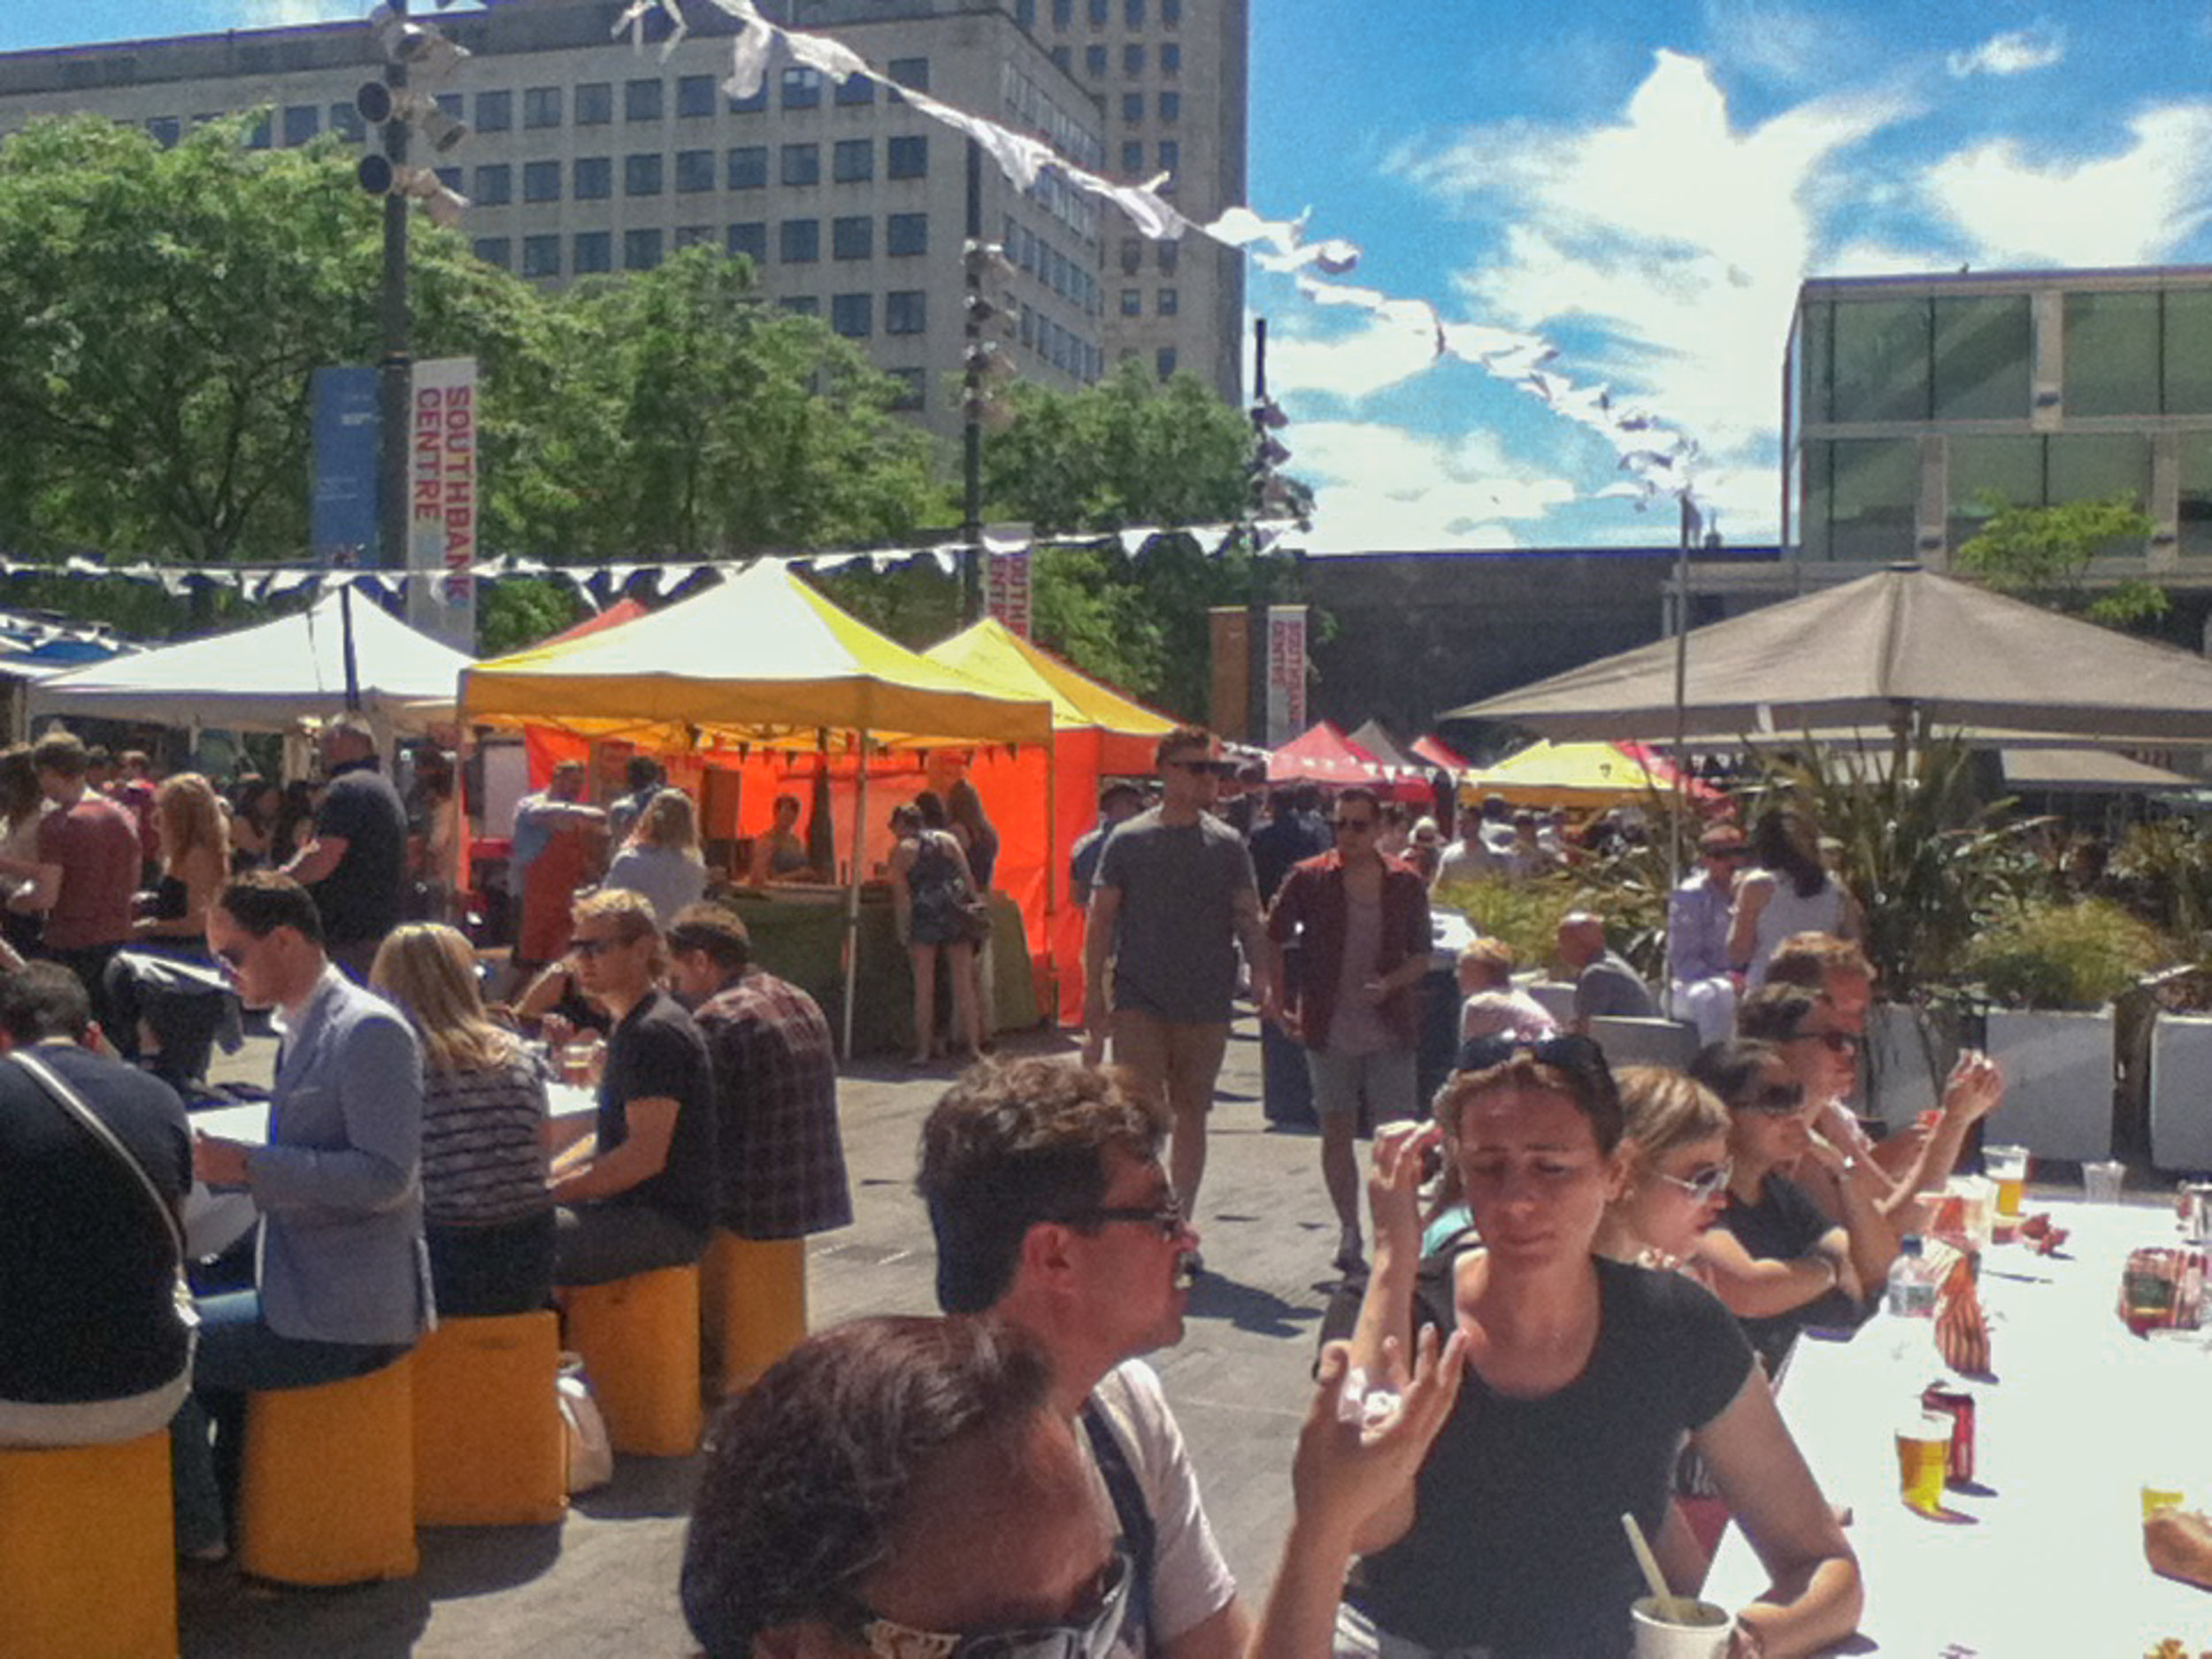 Street Festival in Southbank Centre, London